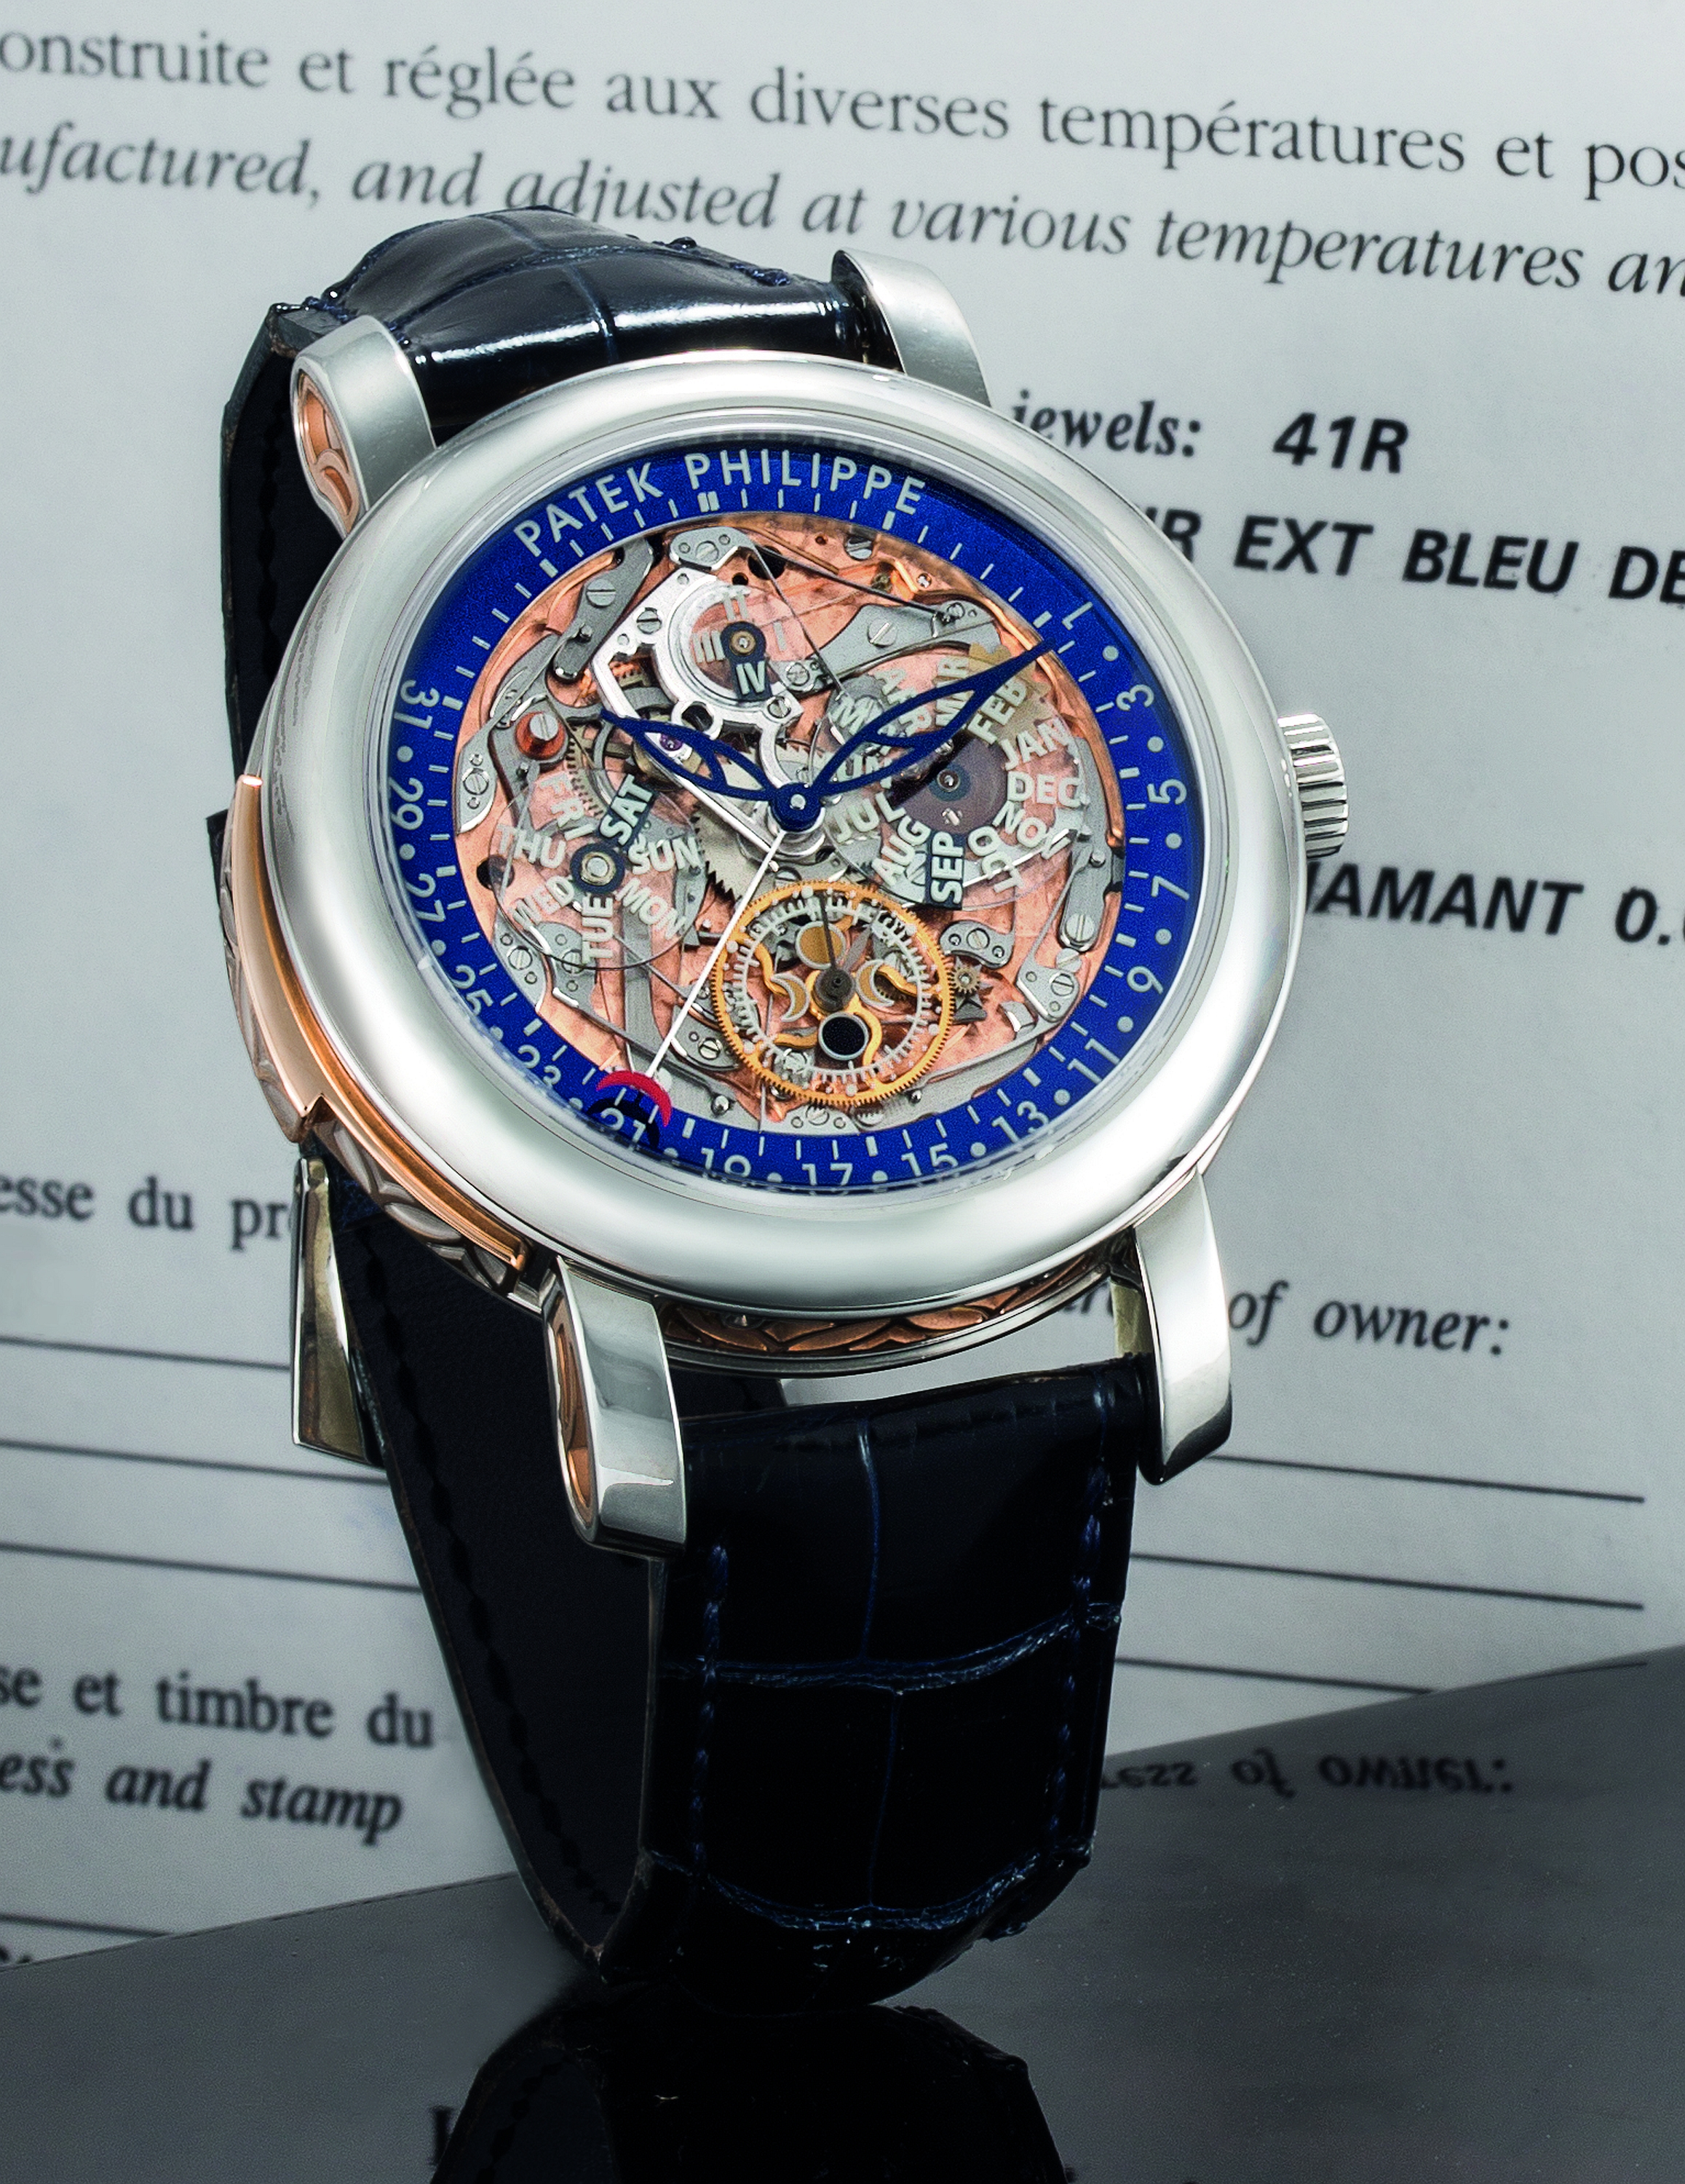 made steel st head chronograph quartz the switch strap fashion swatch stainless more watch features s men a swatchour irony chrono pin and watches movement swiss swatchhour discover adjustable